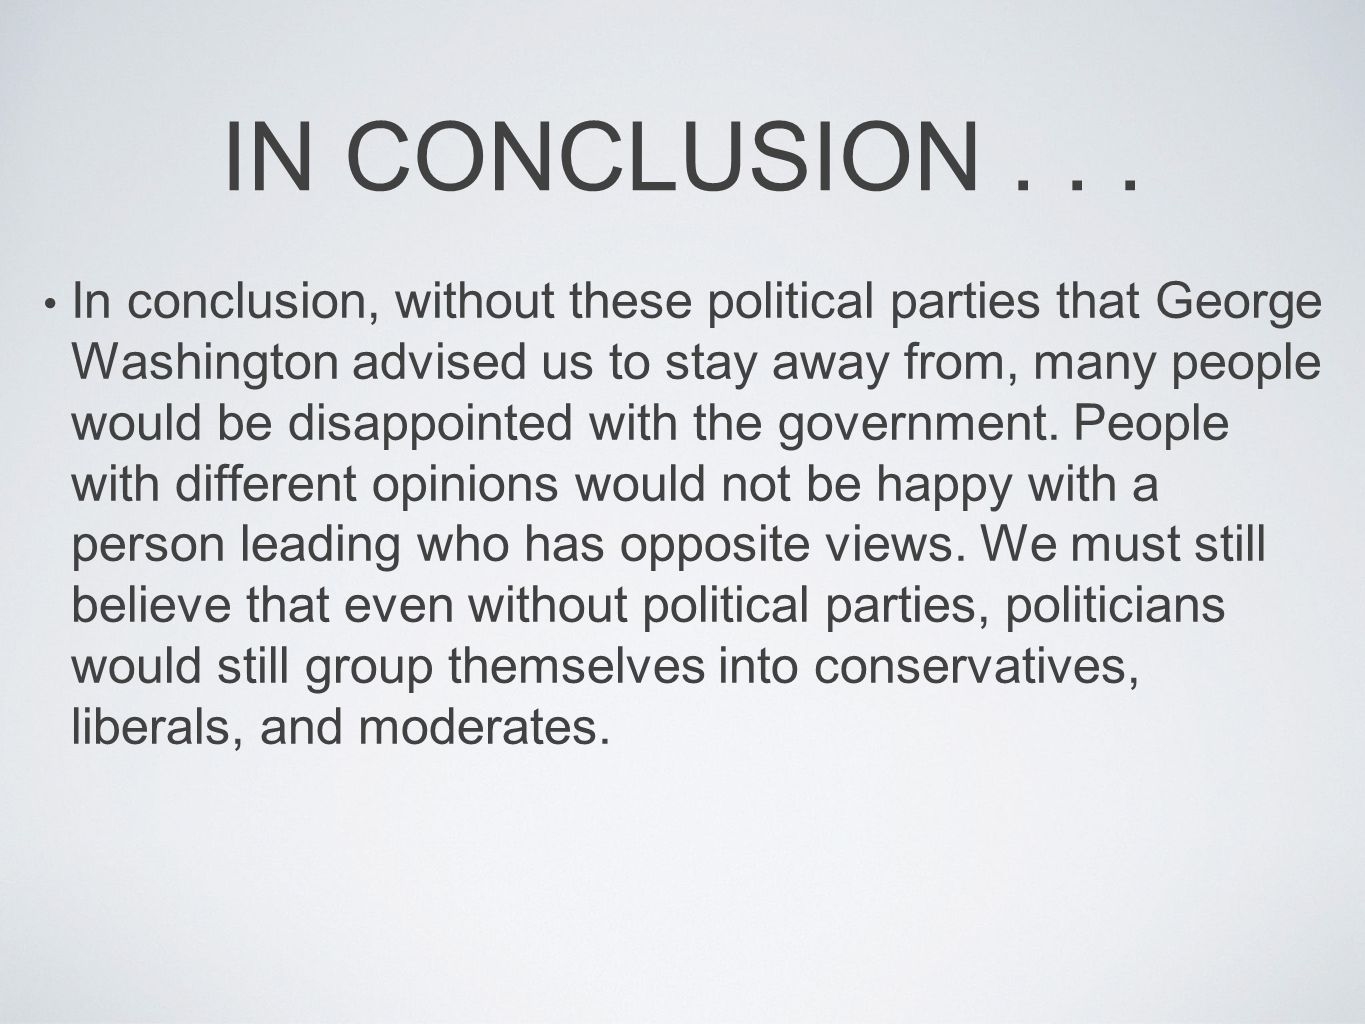 IN CONCLUSION... In conclusion, without these political parties that George Washington advised us to stay away from, many people would be disappointed